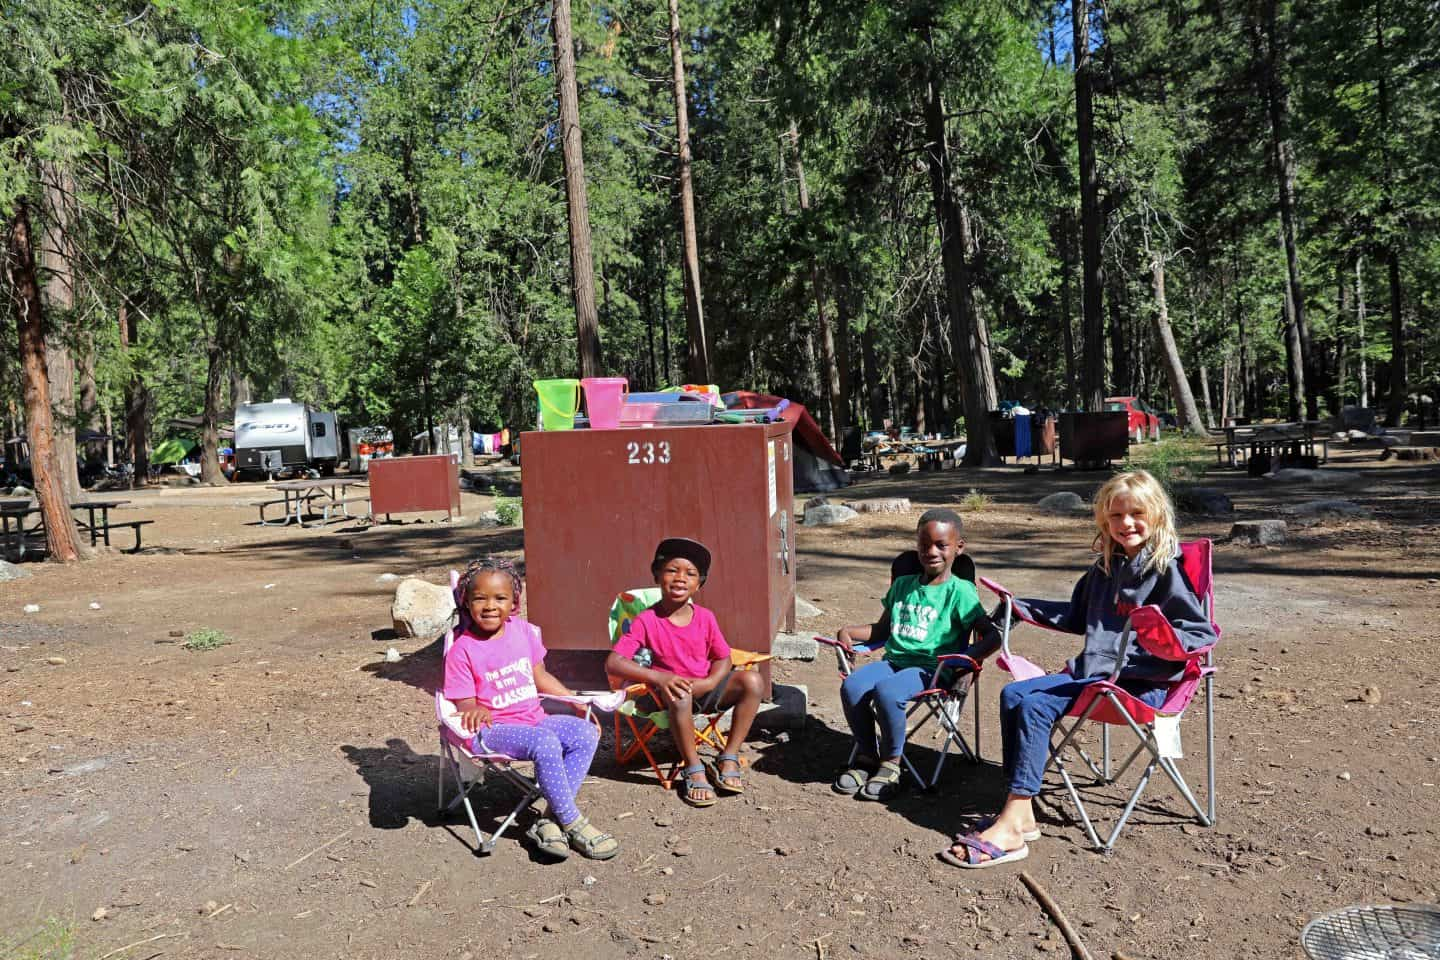 Camping With Kids Checklist – What To Pack